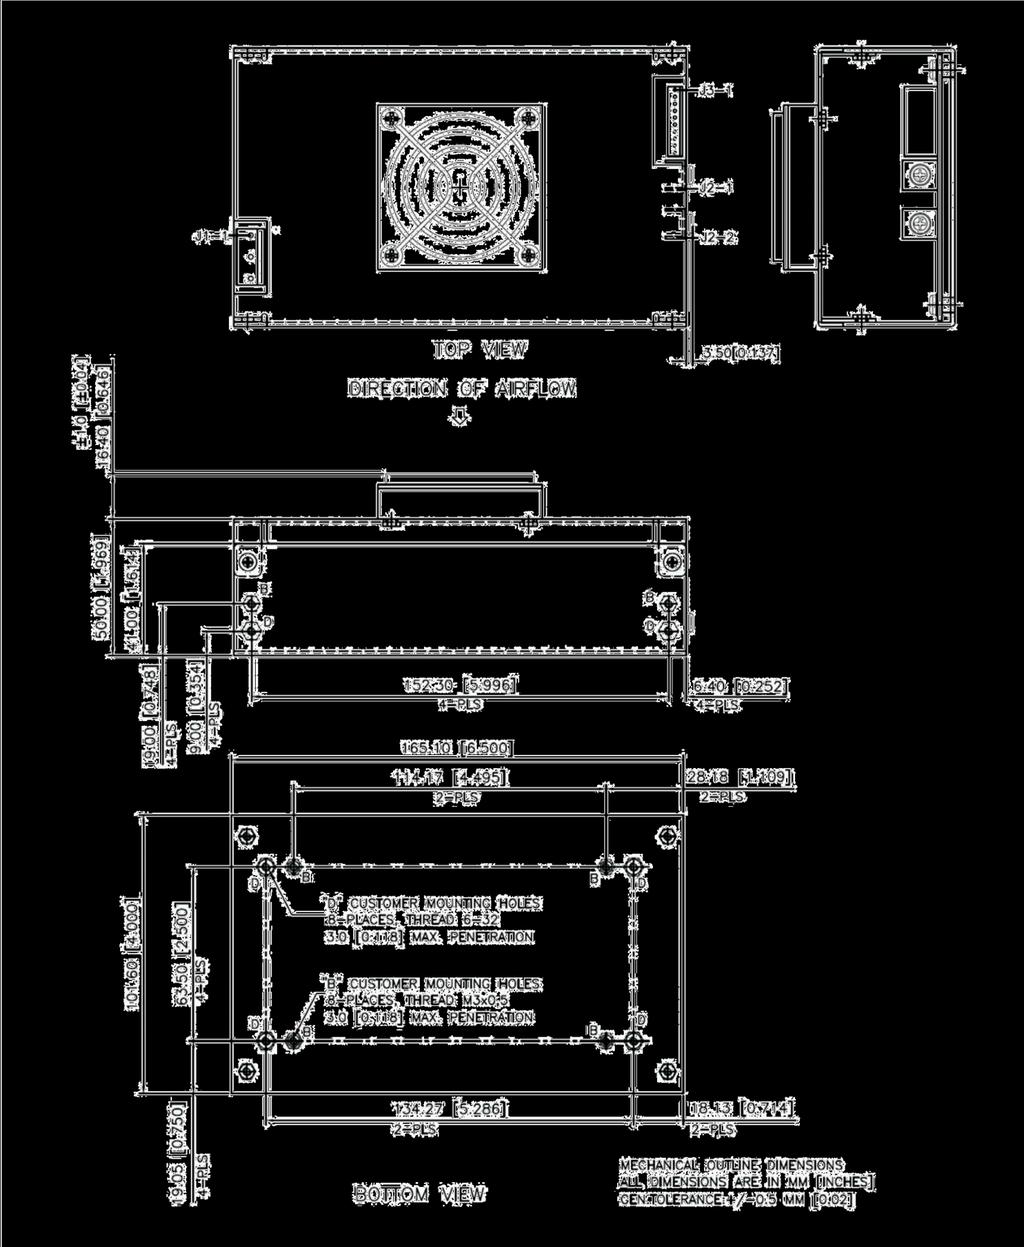 ABC450 Series 7 Figure 3 - Mechanical Drawing (With Top Fan Mounting) Asia-Pacific +86 755 298 85888 Europe,